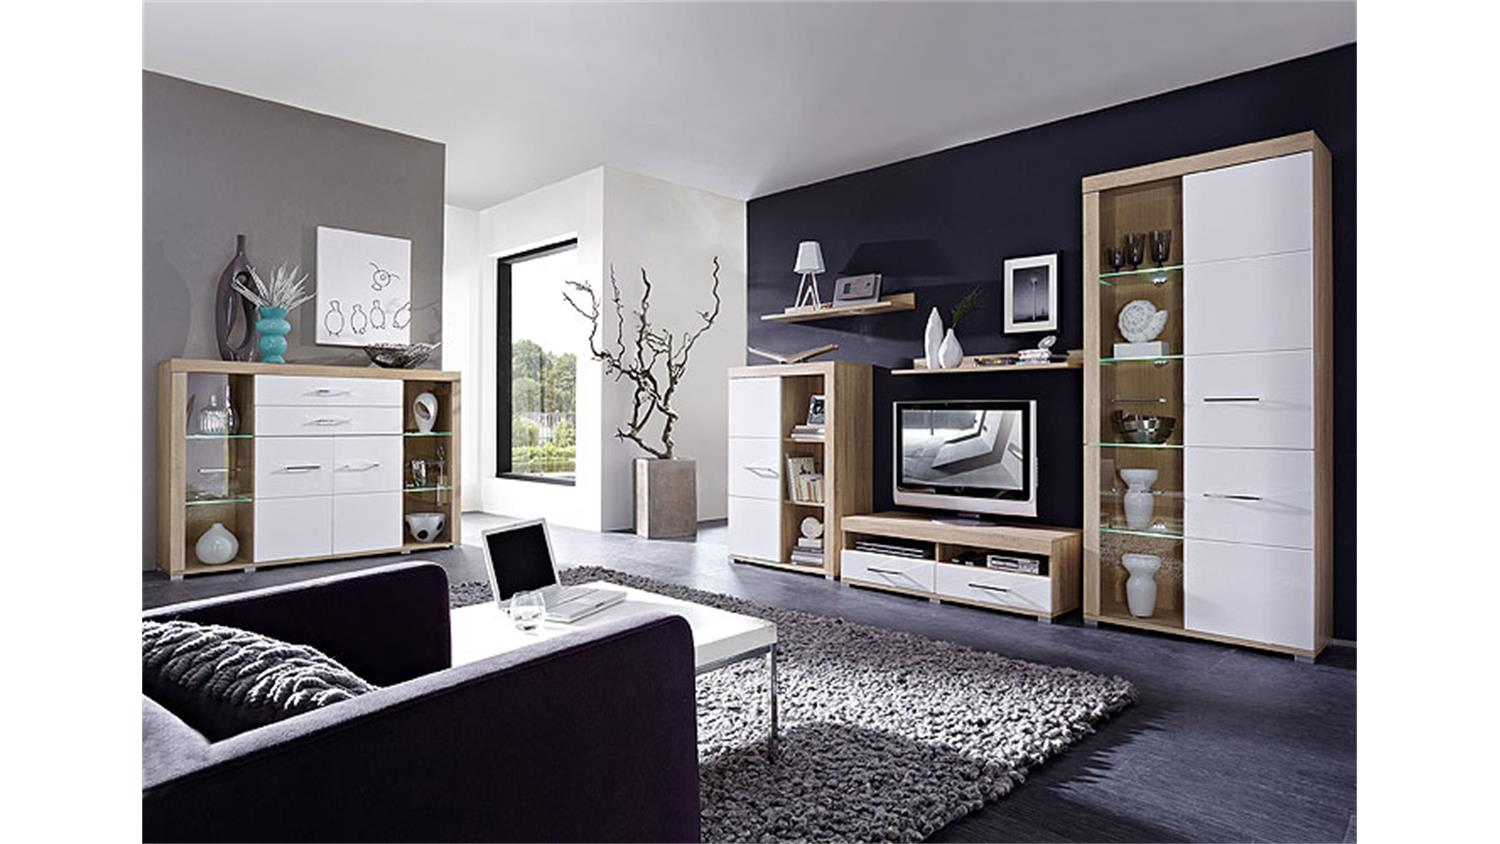 wohnwand ii zento wei hochglanz sonoma eiche s gerau hell. Black Bedroom Furniture Sets. Home Design Ideas